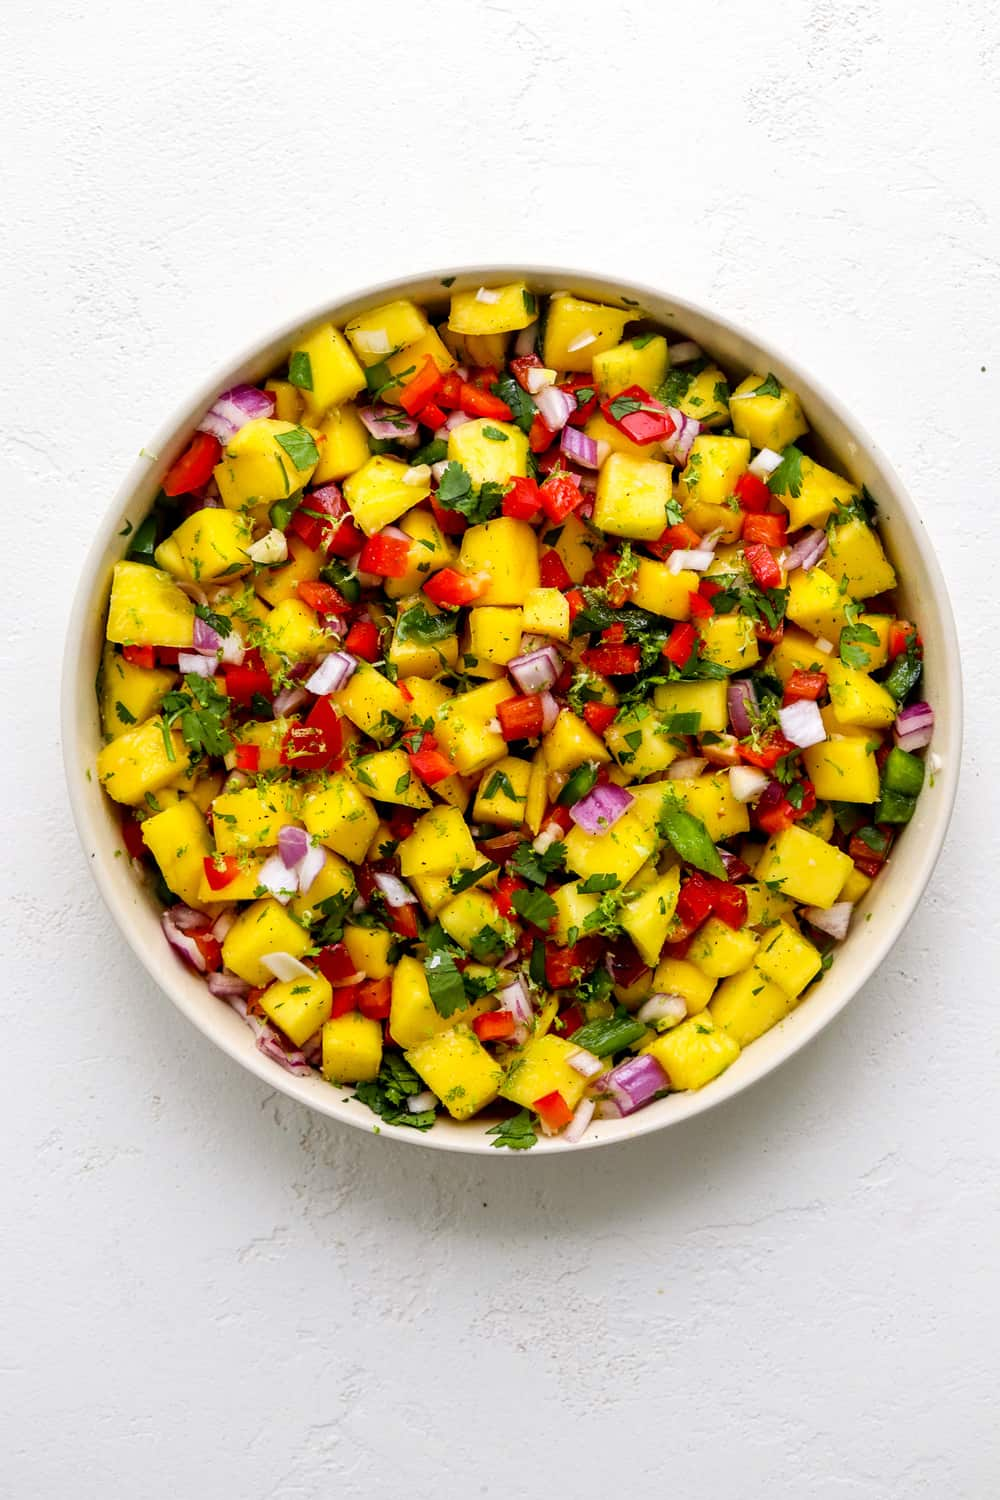 Single round bowl of spicy mango salad with red and green peppers and herbs in it on a white surface